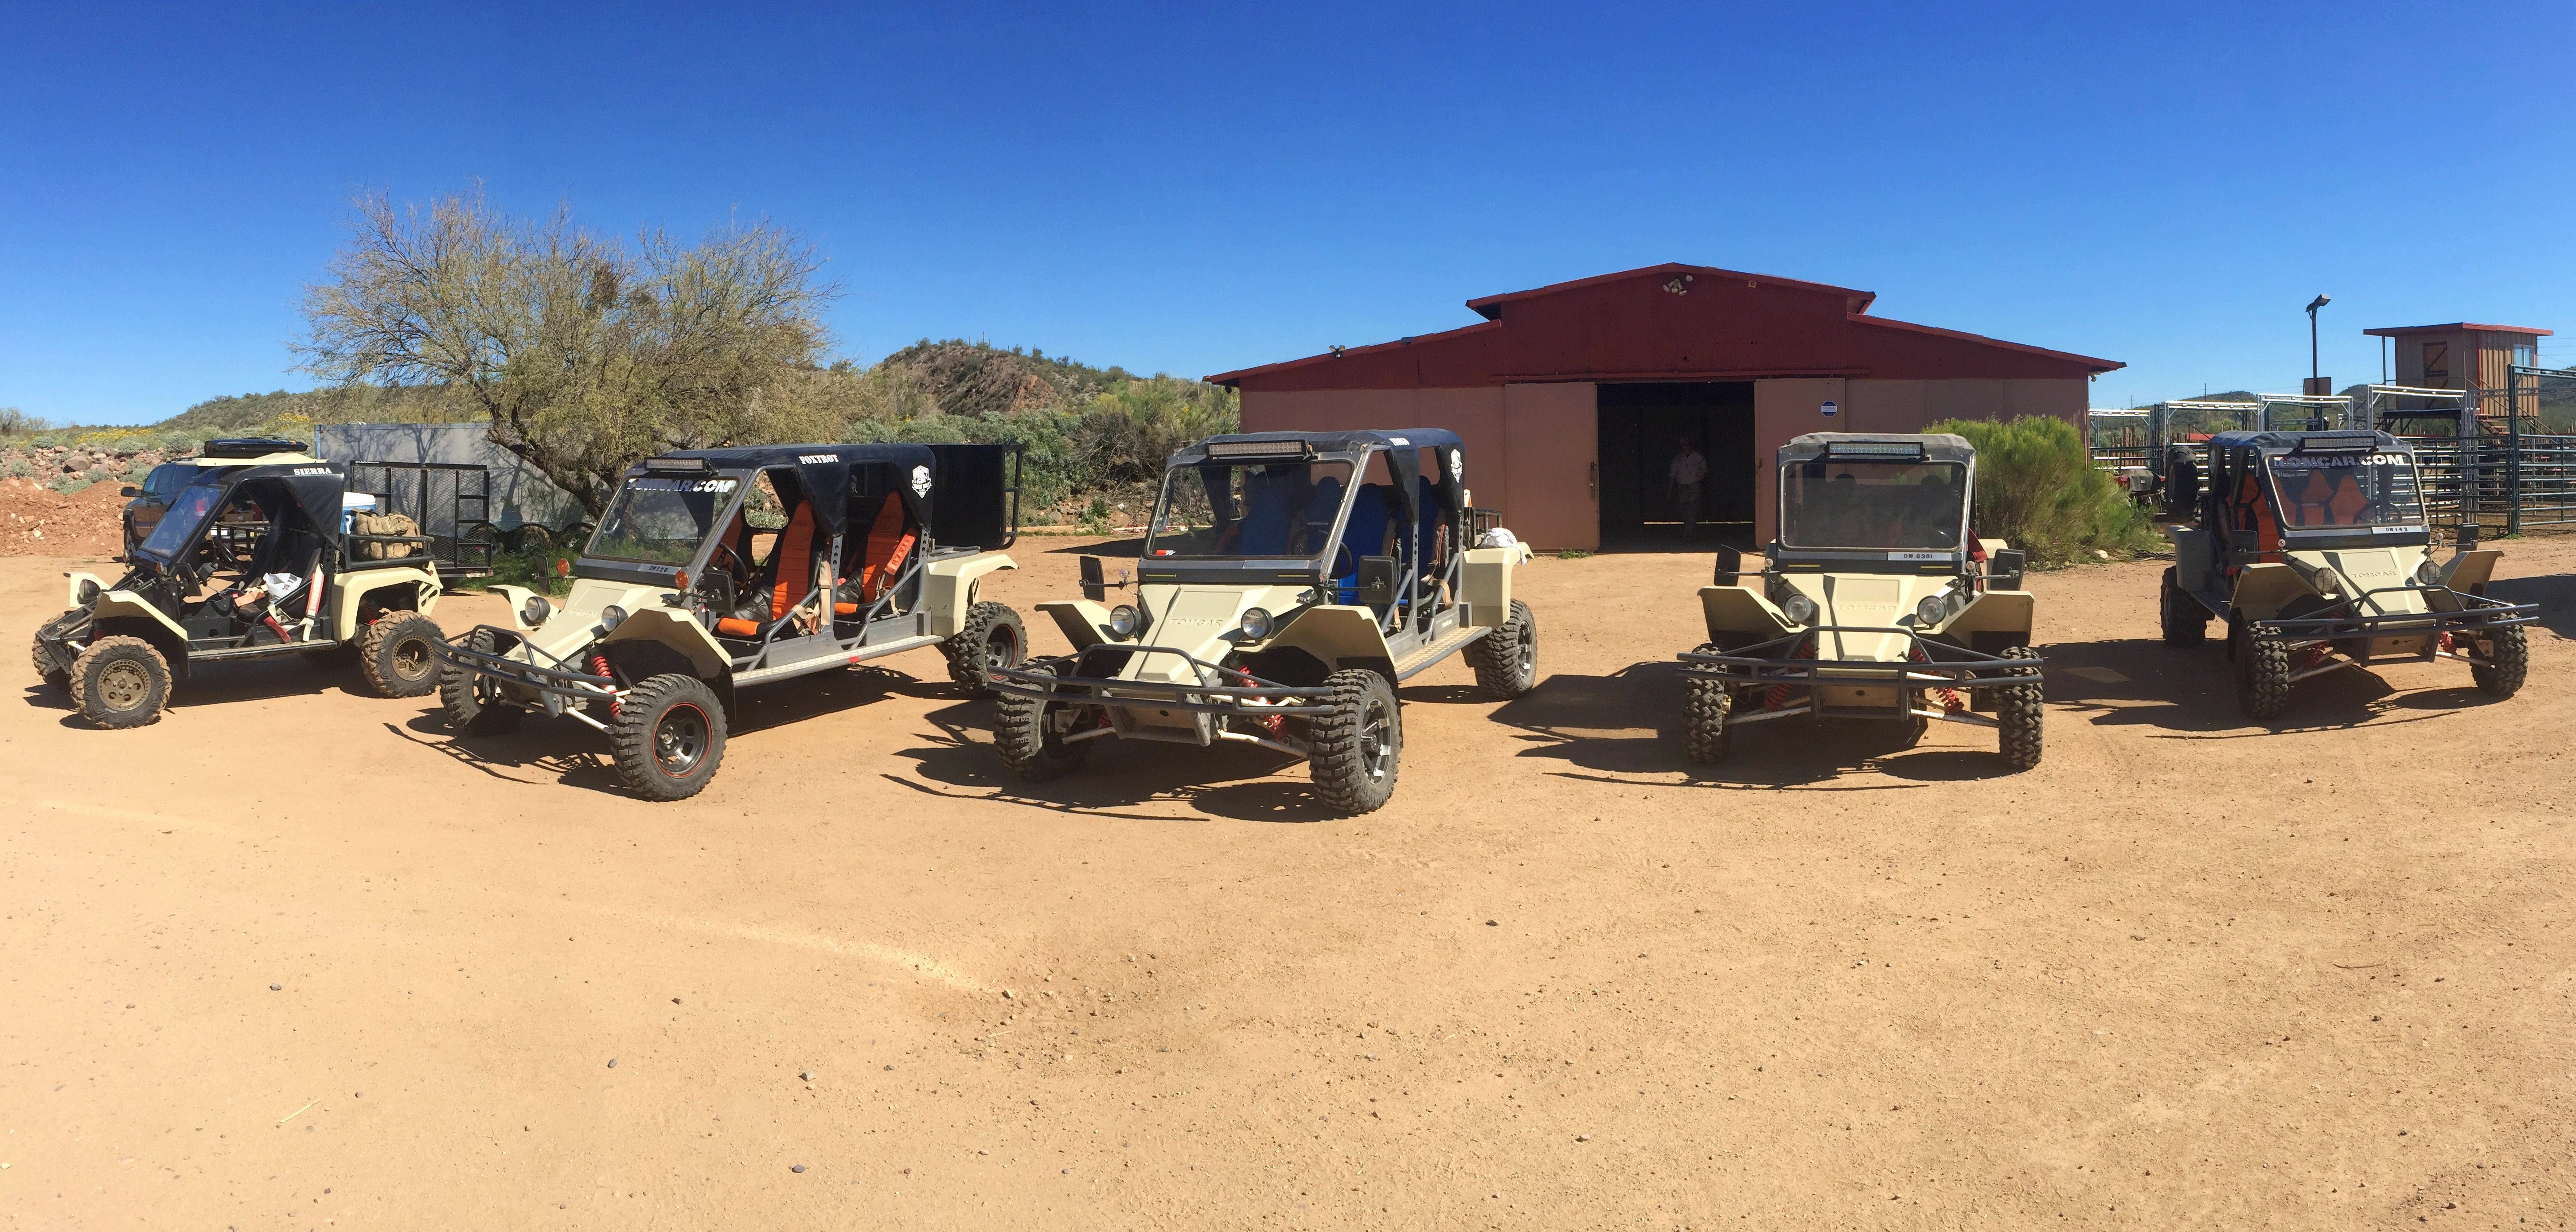 ATV rentals ready for Phoenix tour